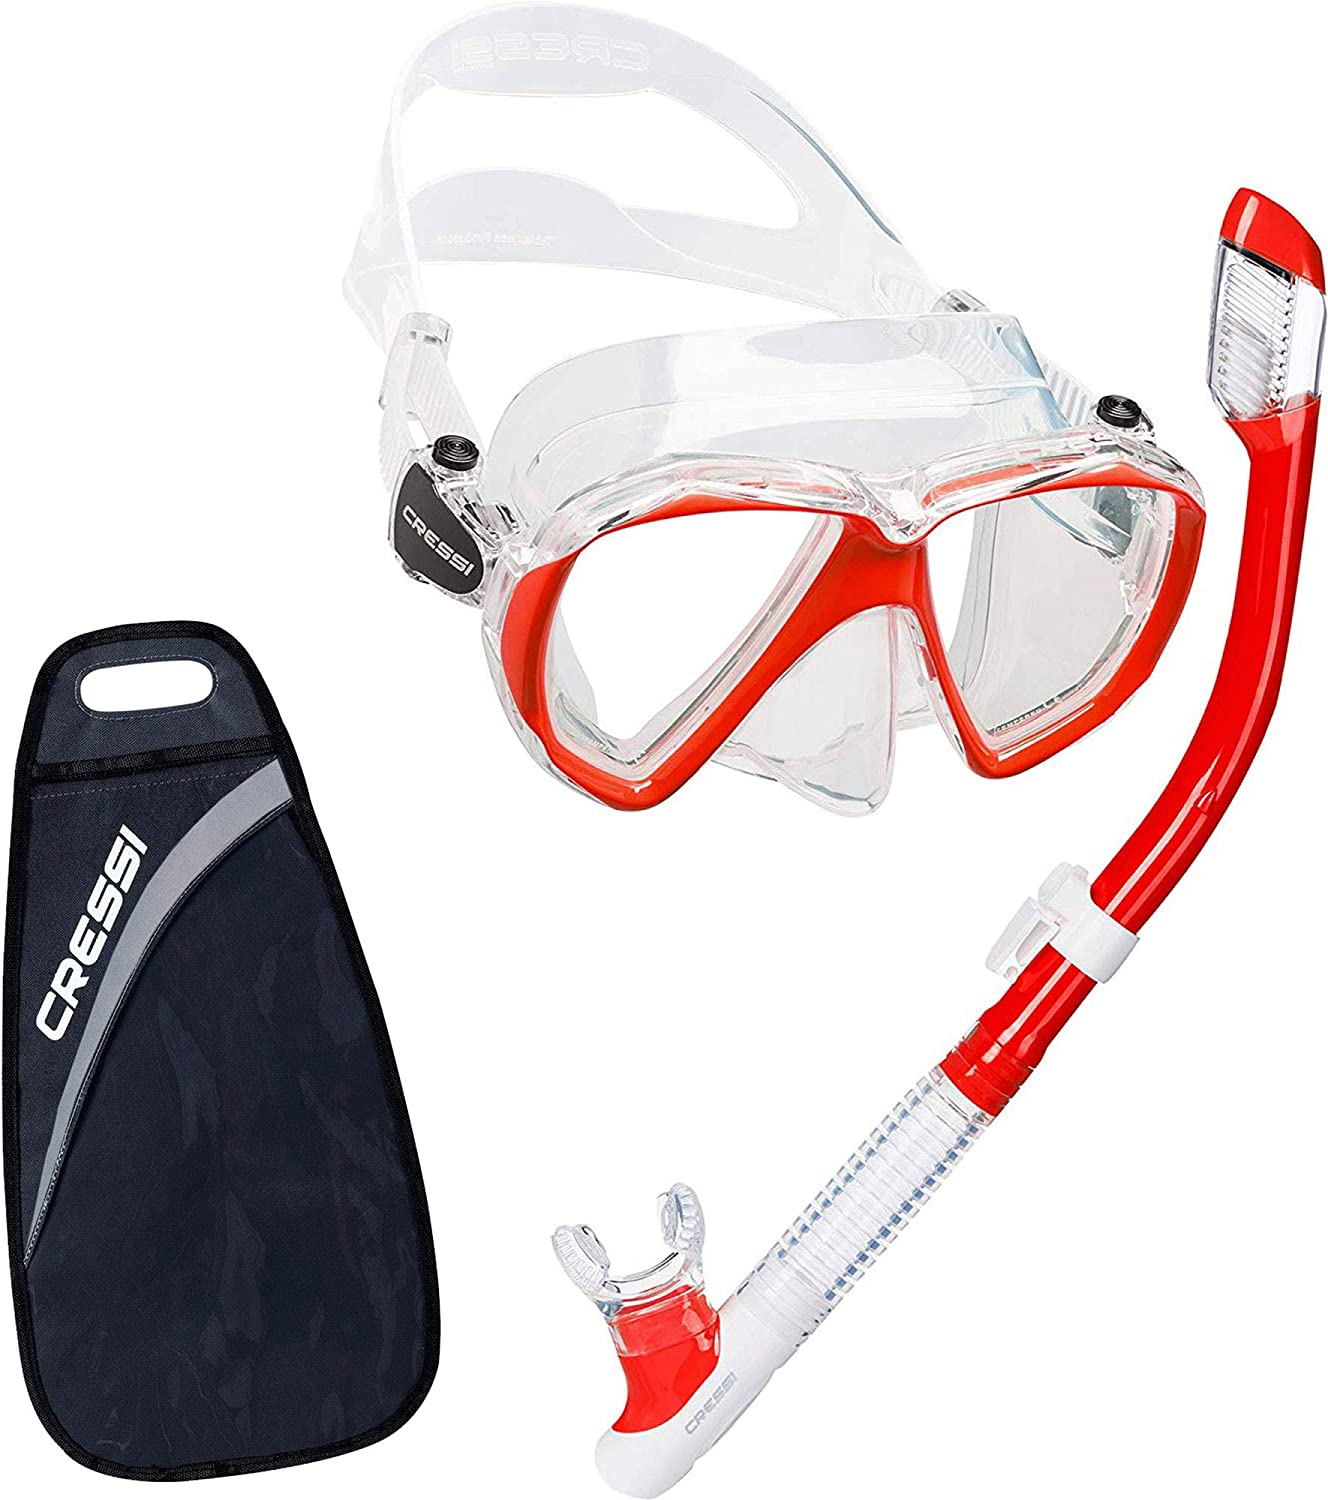 Ranger /& Tao: Designed in Italy Cressi Adult Snorkeling Kit: Mask Dual Lens Mask Made of Soft Silicone: Perfect Seal /& Perfect Fit Choose Semi-Dry or Dry Snorkel Snorkel